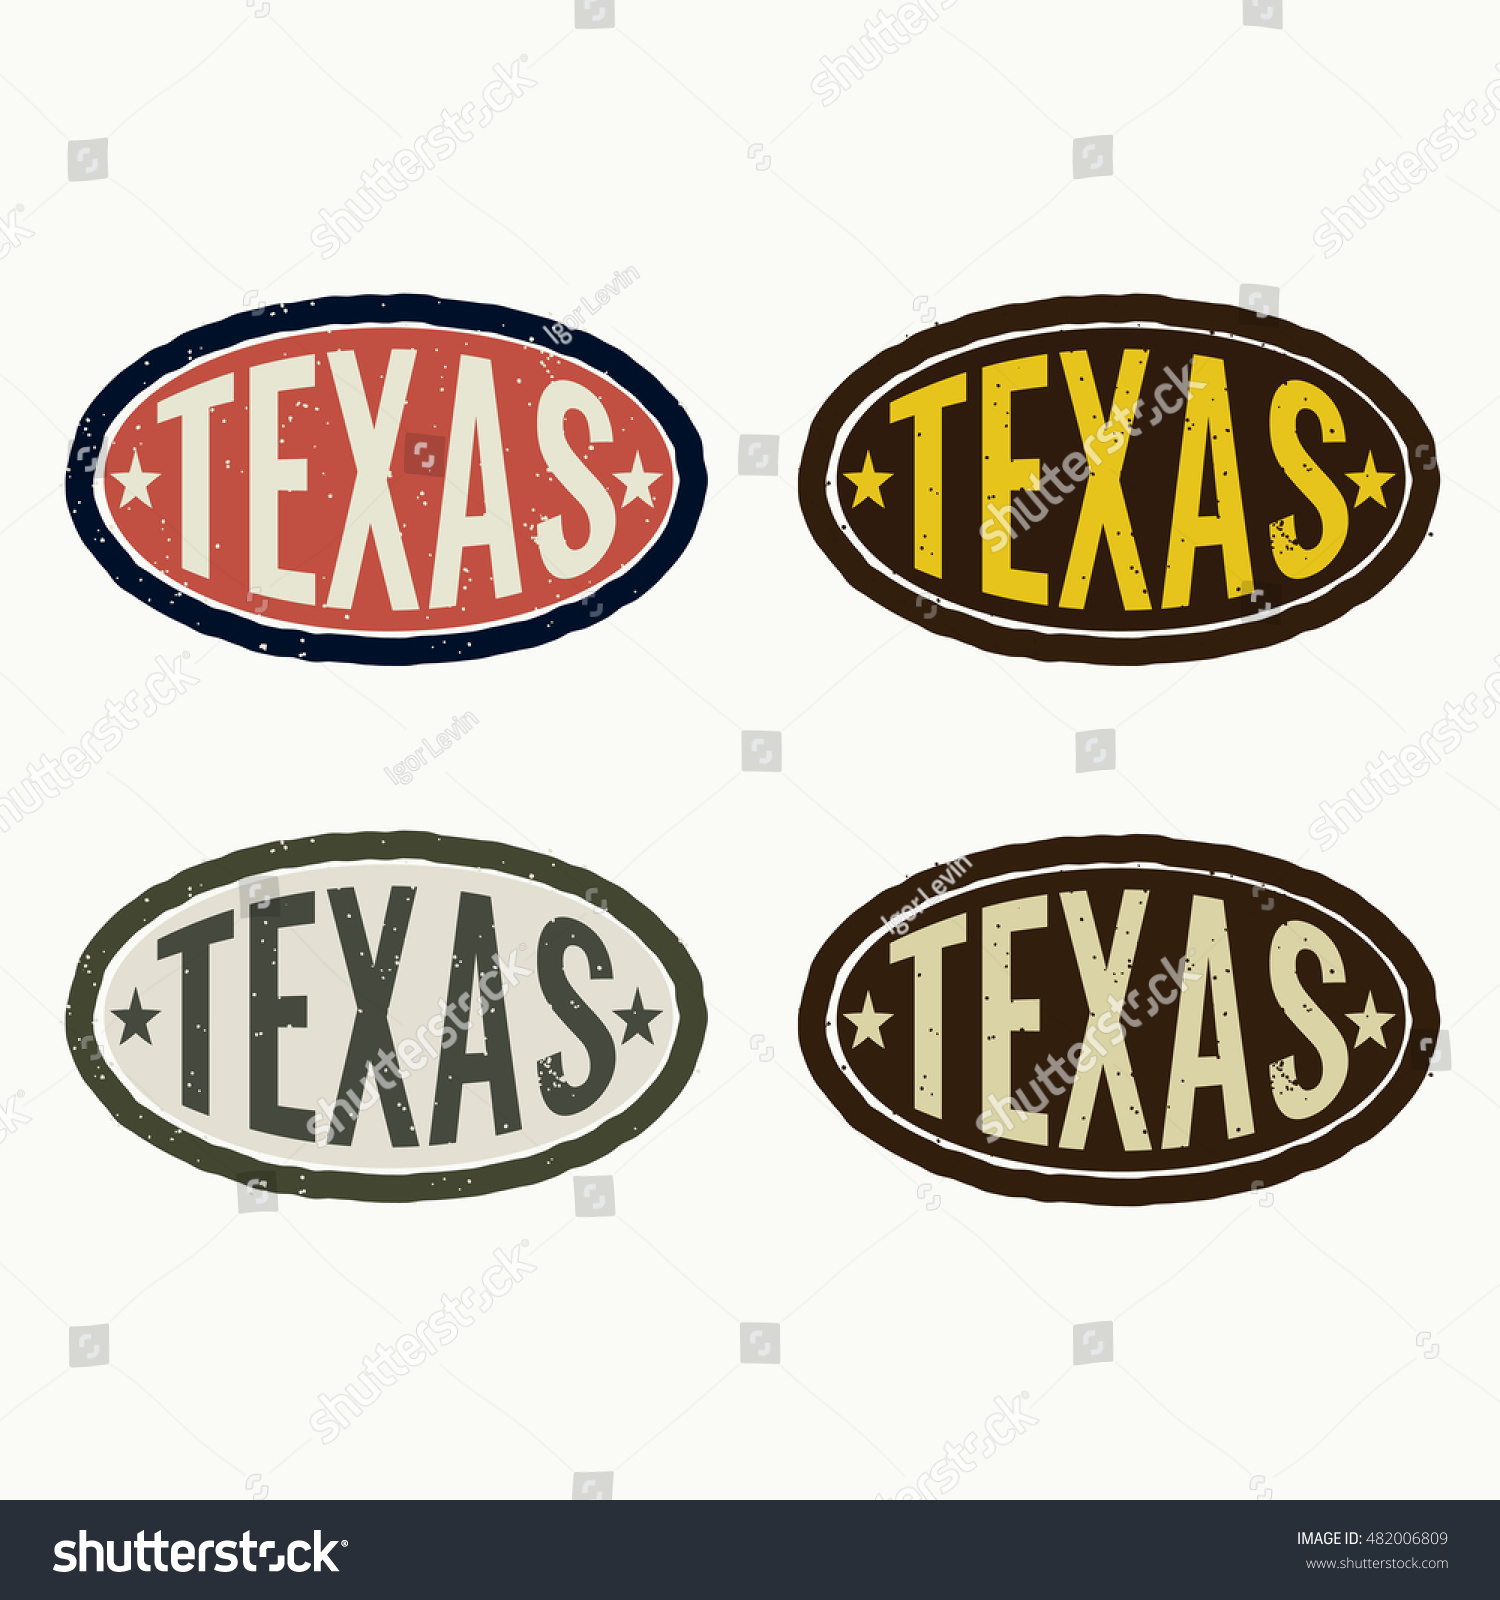 Western Texas Intermediate The Western Texas Intermediate (WTI), also known as Texas light sweet, is a light crude oil low in wax and sulphur content which makes it light and sweet. It is usually refined into gasoline, kerosene and diesel.